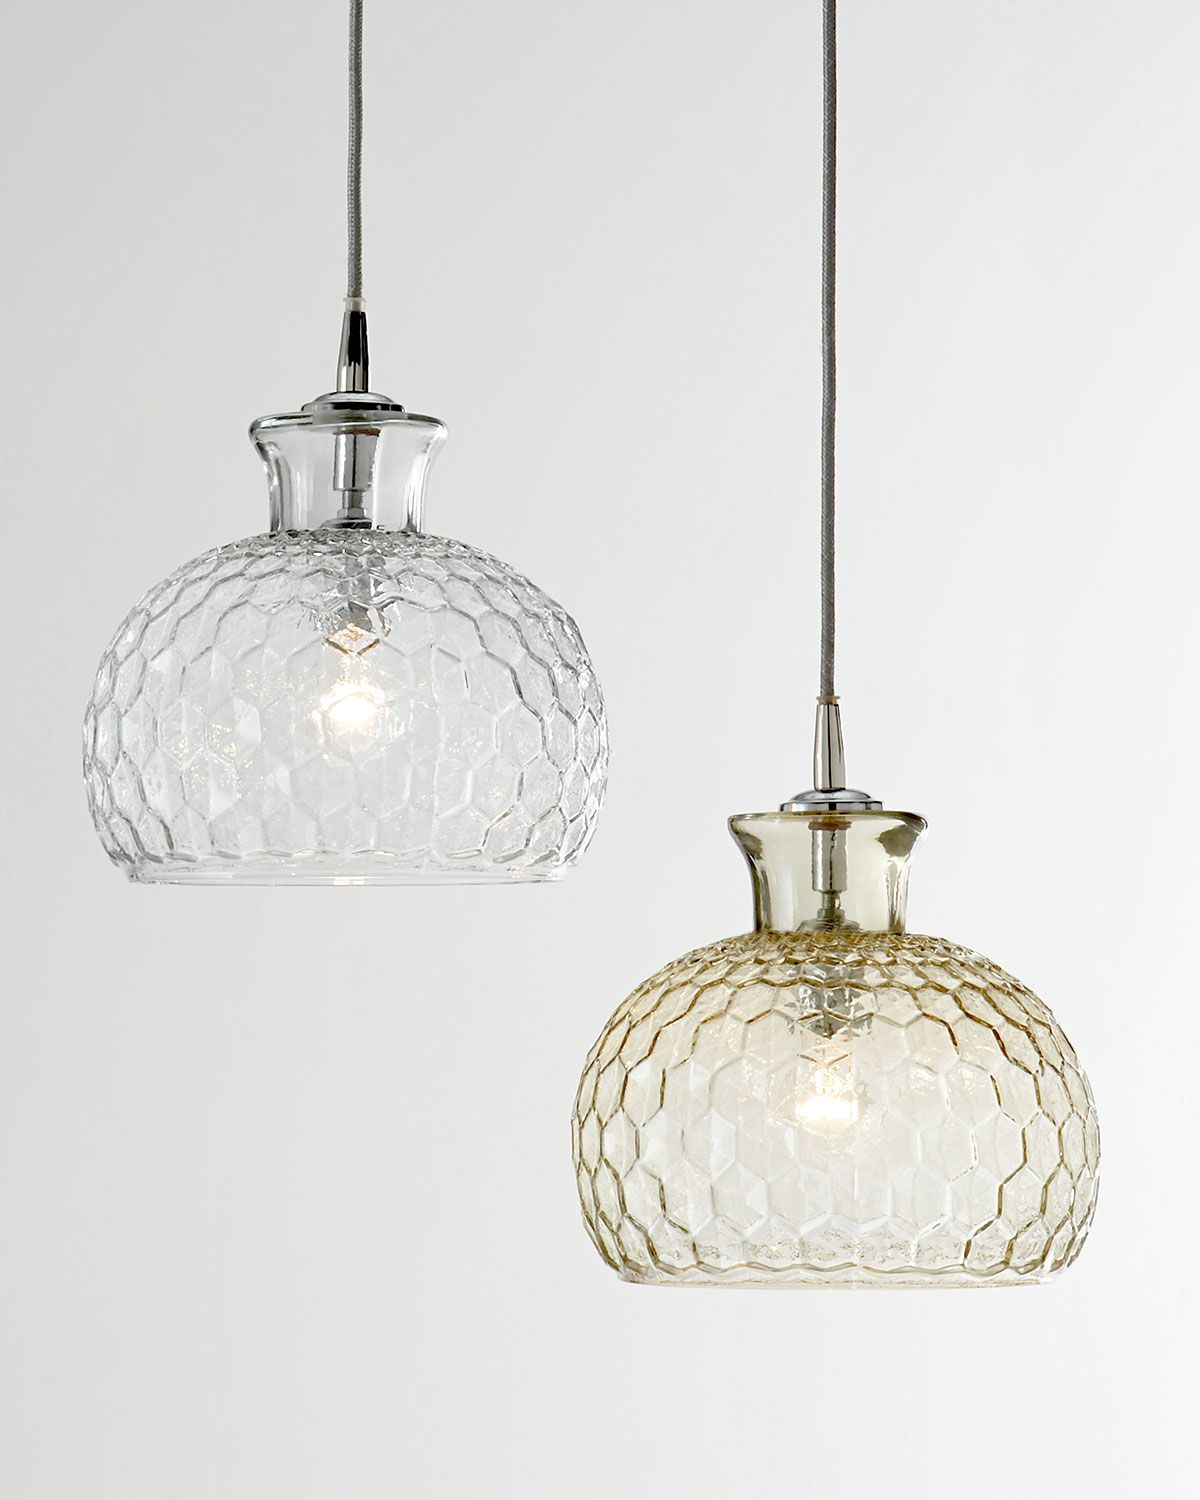 Jamie young clark 1 light pendant kitchen pendant lighting jamie young clark 1 light pendant aloadofball Choice Image